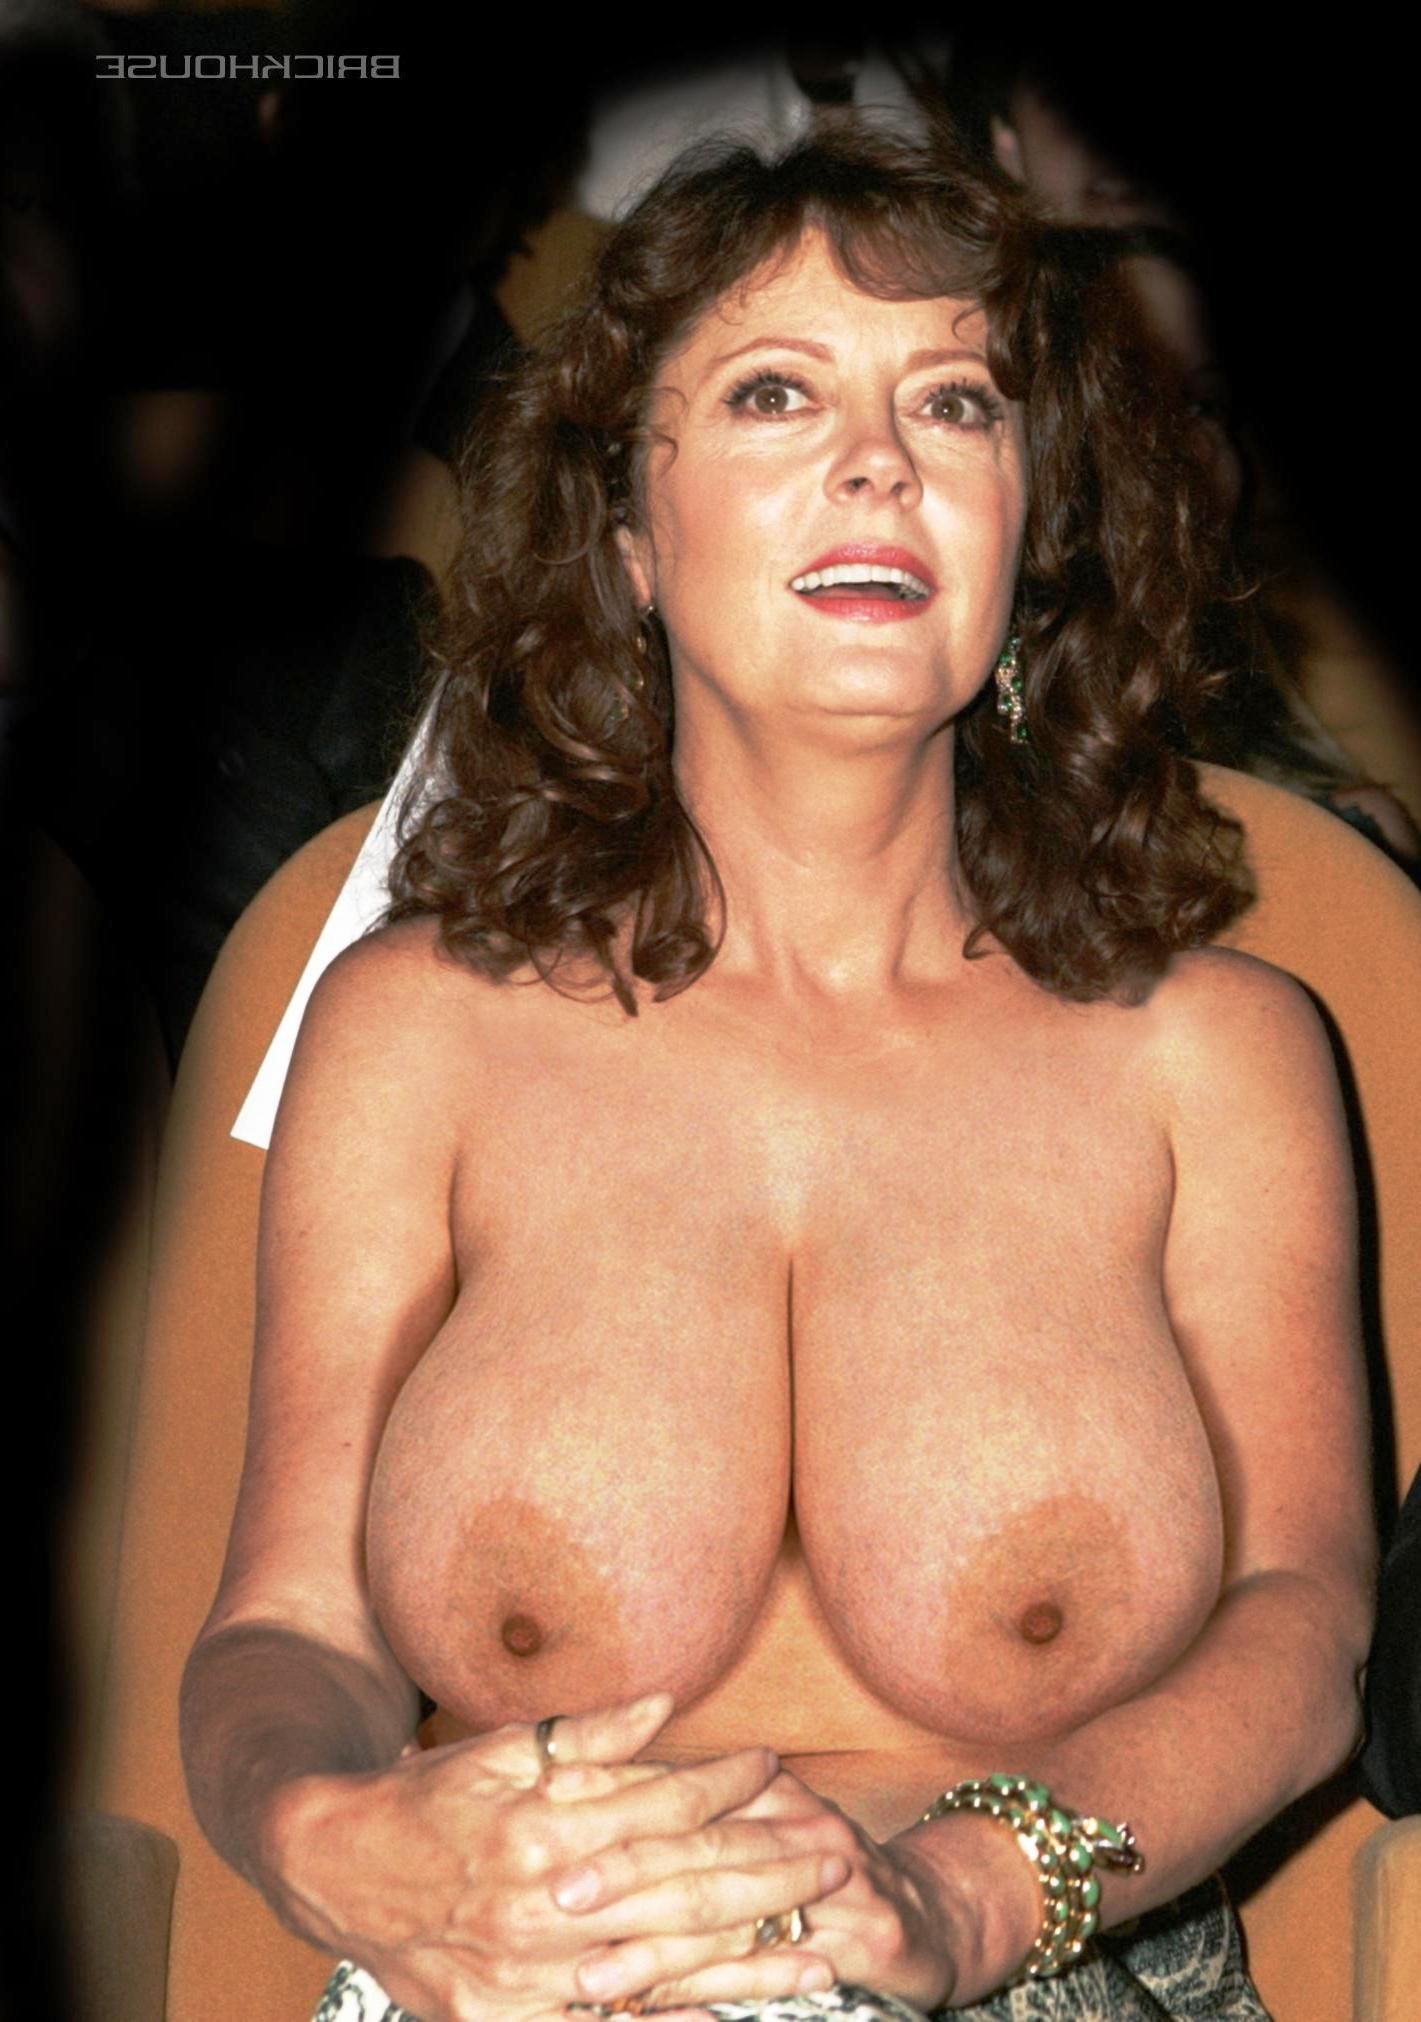 674 Celebrity Mature Free Videos Found On Xvideos For This Search